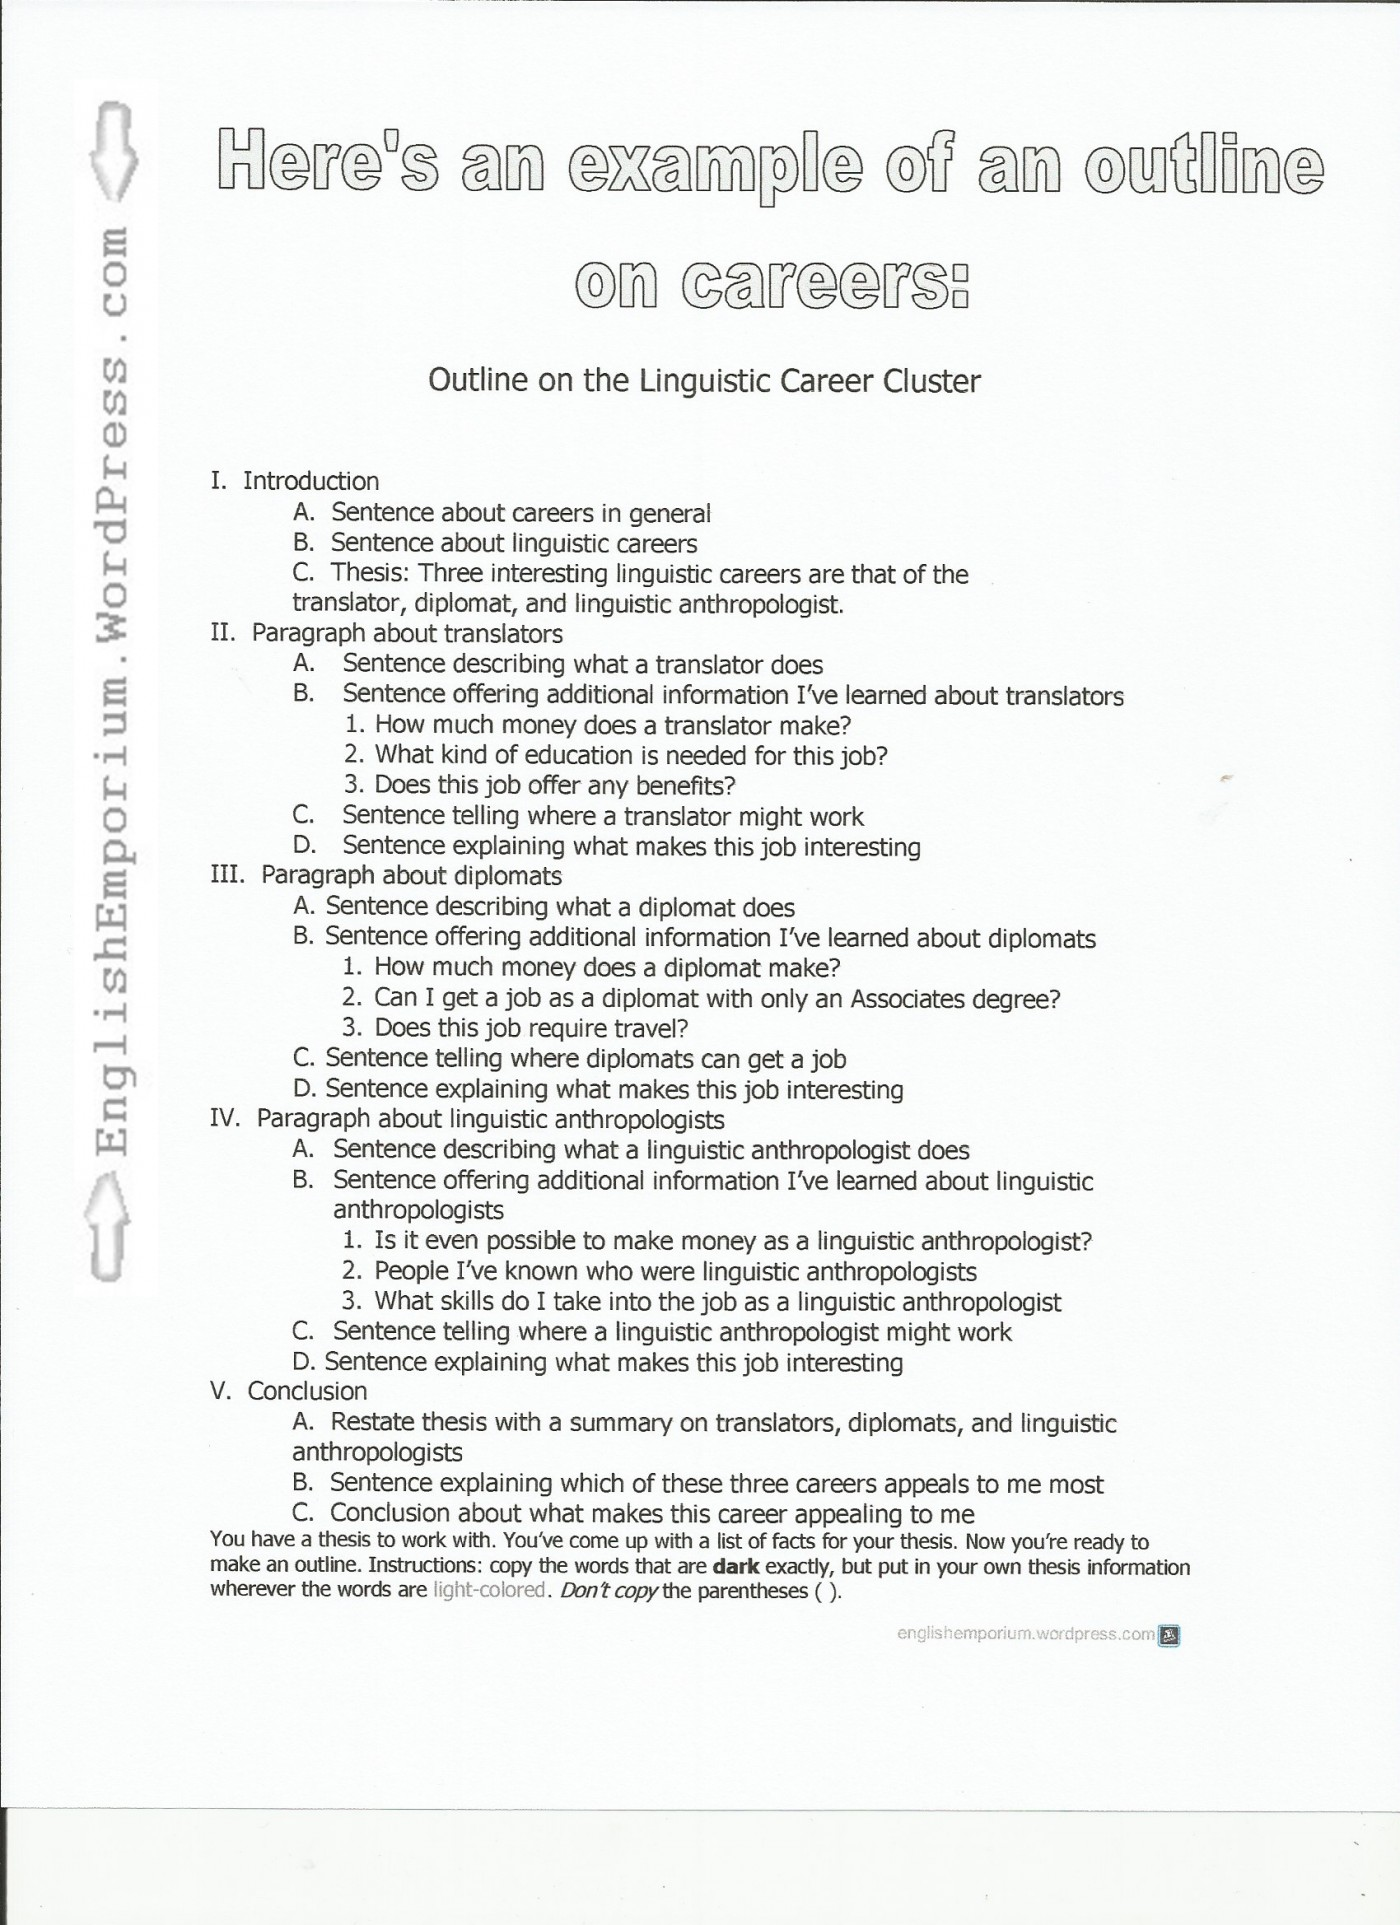 020 Research Paper Outline On Careers Pg Outlines For Top A Bullying Sample Apa Format 1400